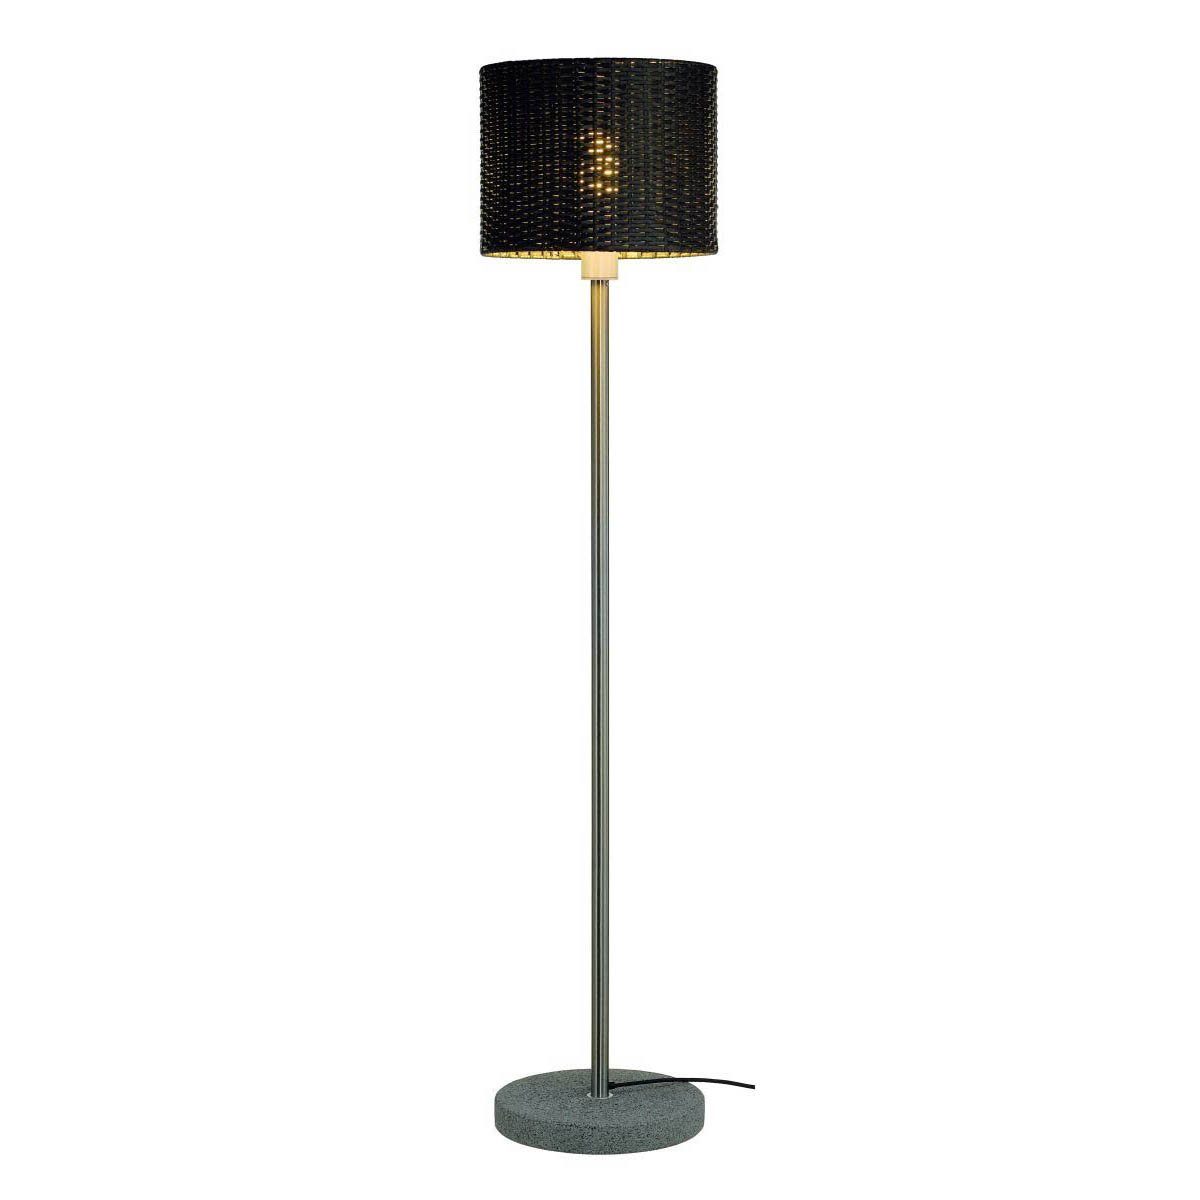 SLV Lighting 231395U Adegan Manila SL Outdoor Floor Lamp, Stainless Steel/Anthracite